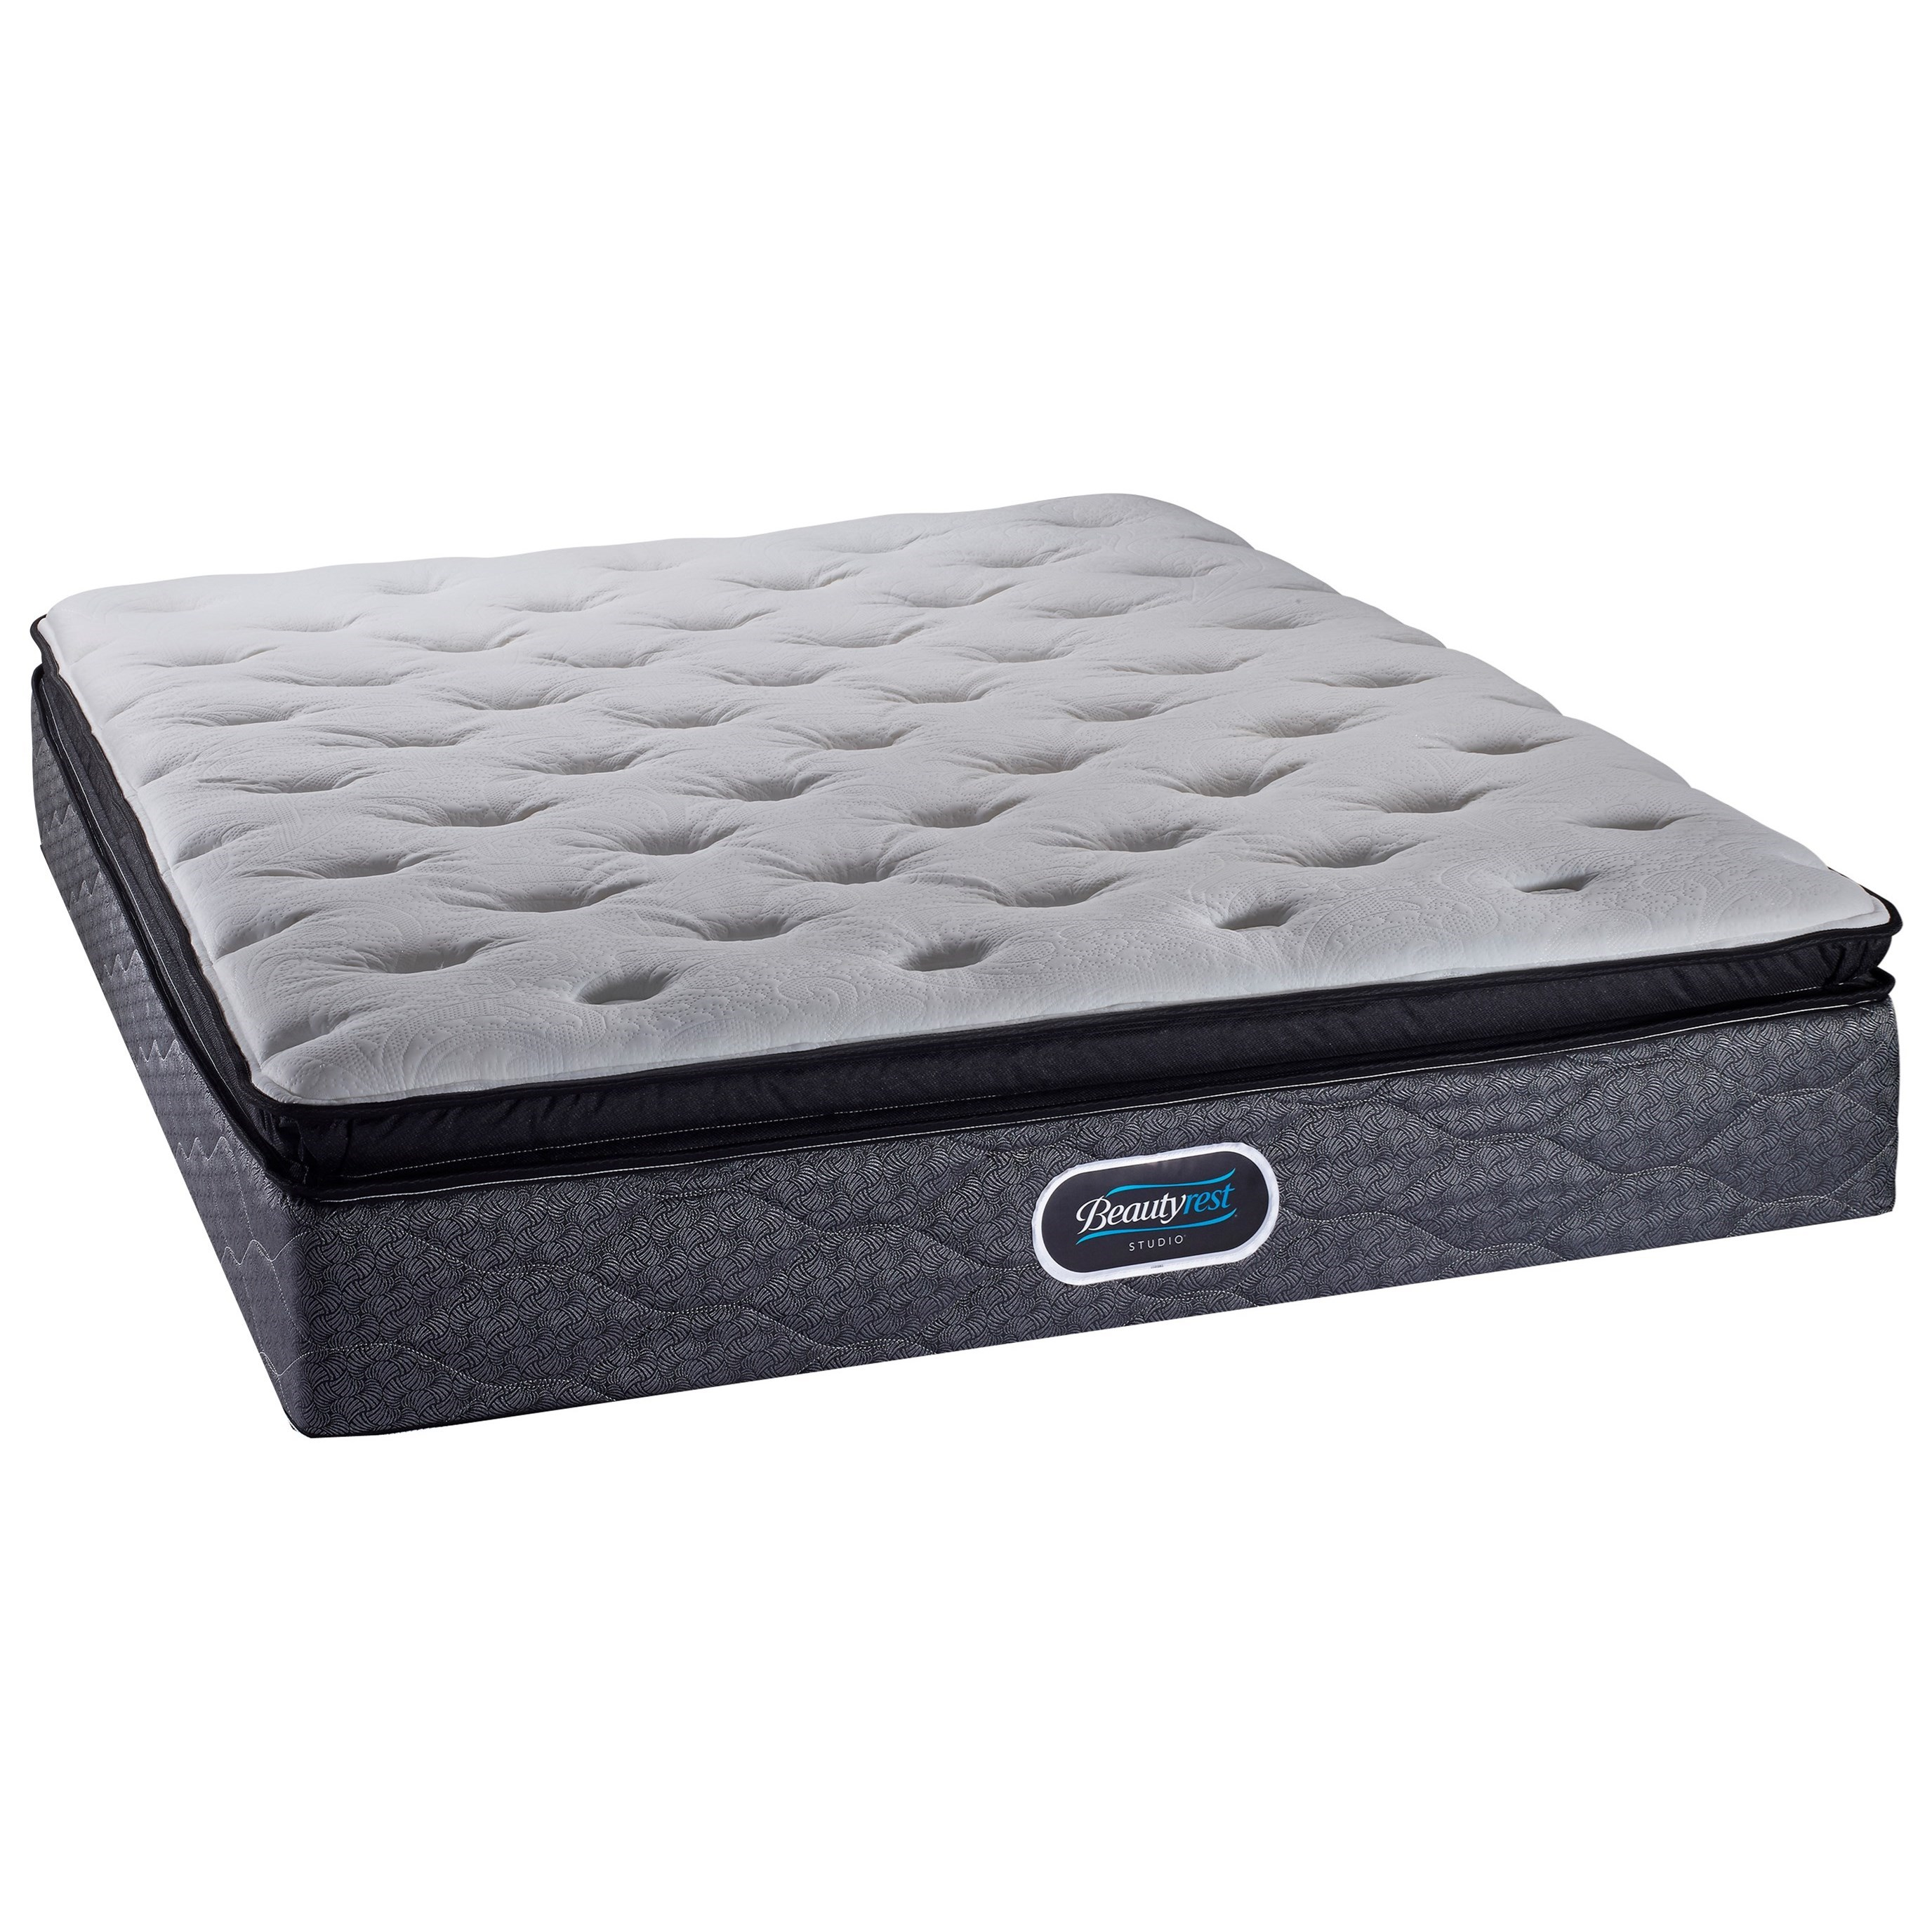 Twin Hi-Loft Plush Mattress